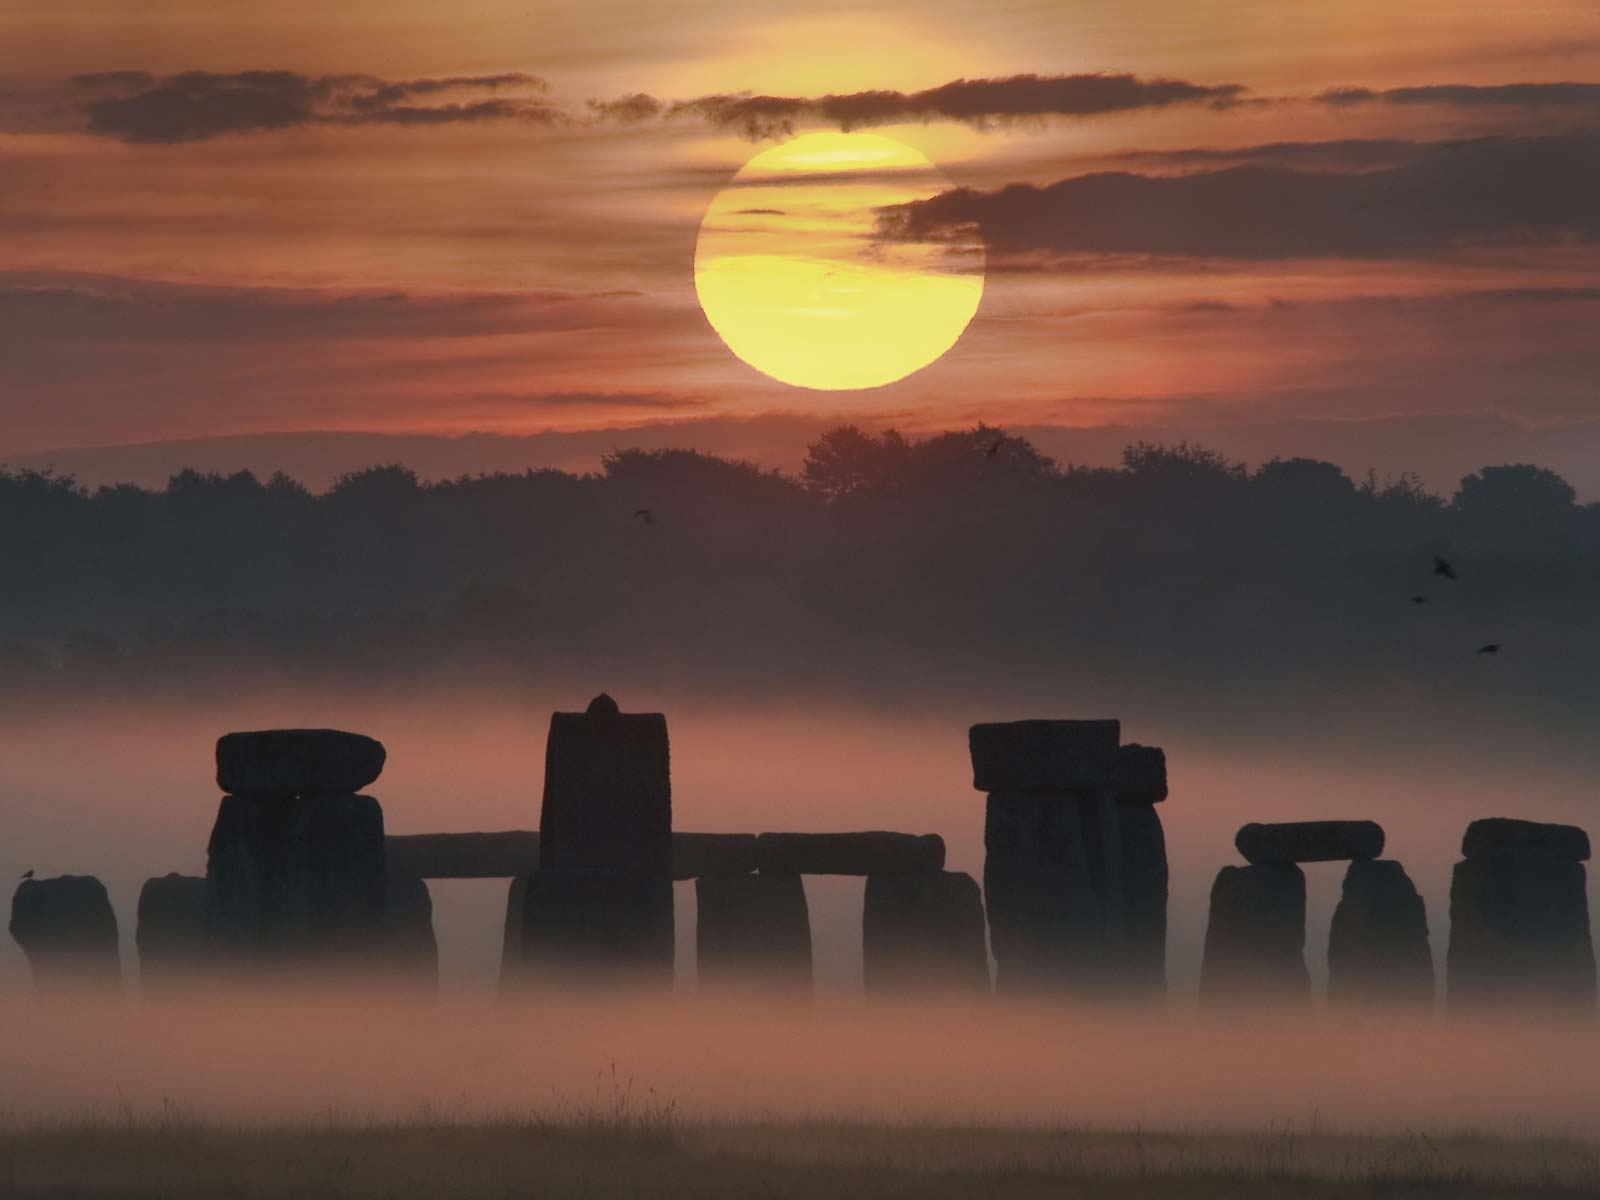 Summer Solstice Sunrise at Stonehenge | Space Wallpaper